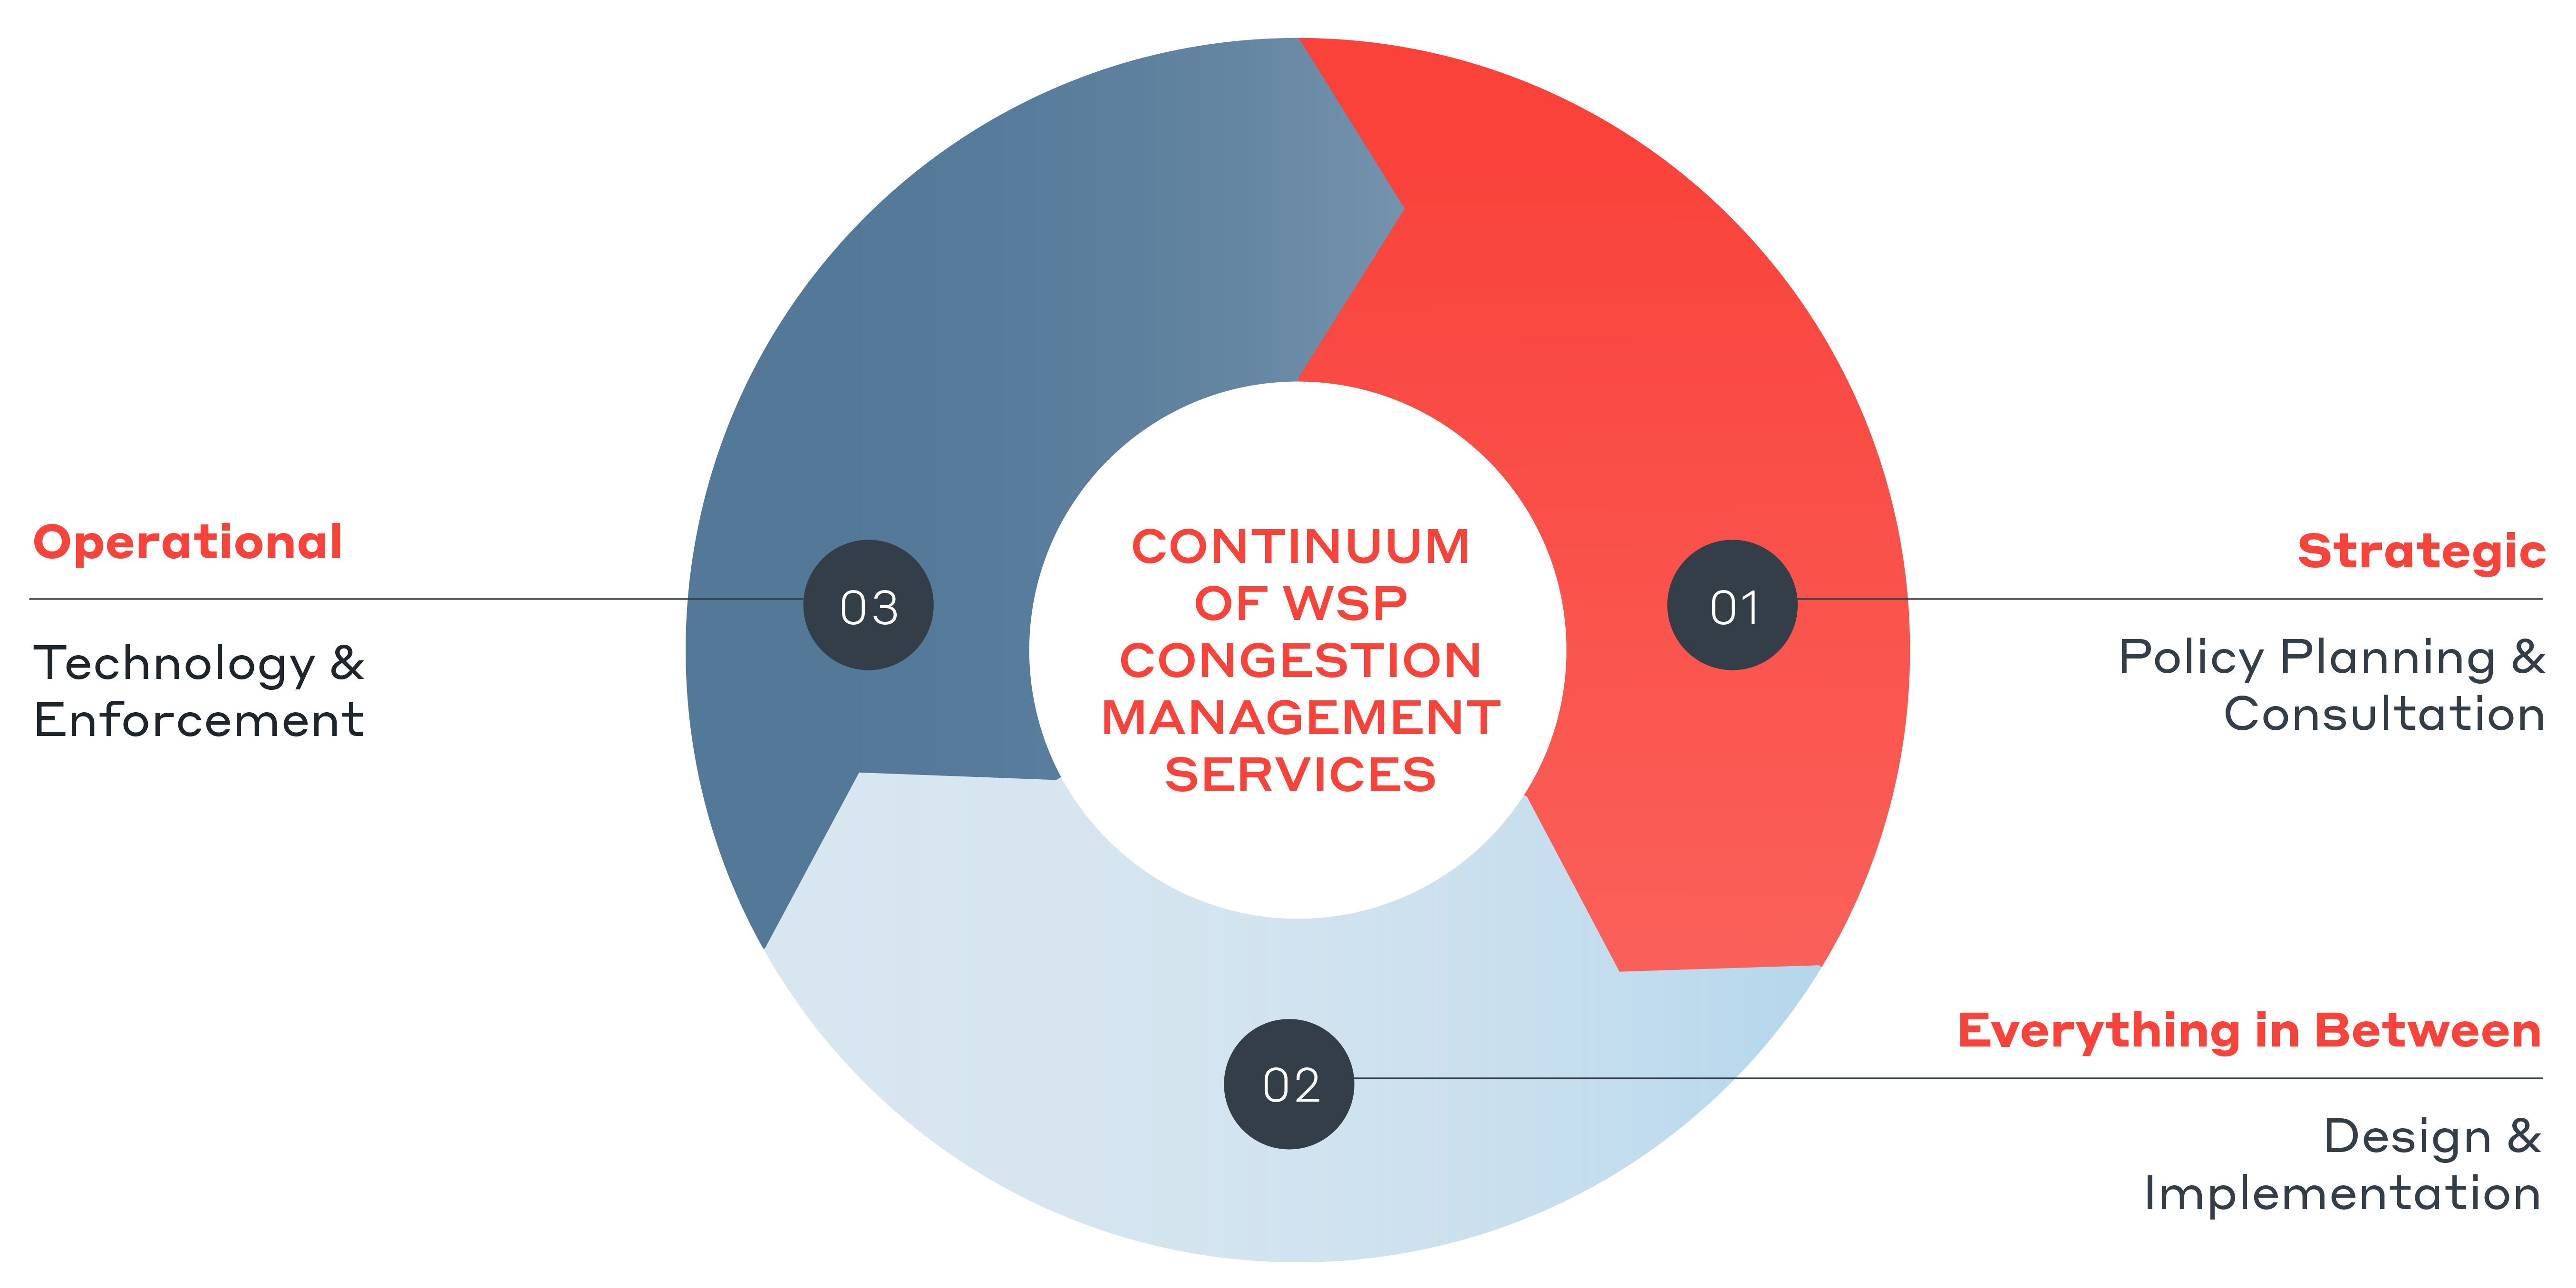 Continuum of WSP Congestion Management Services